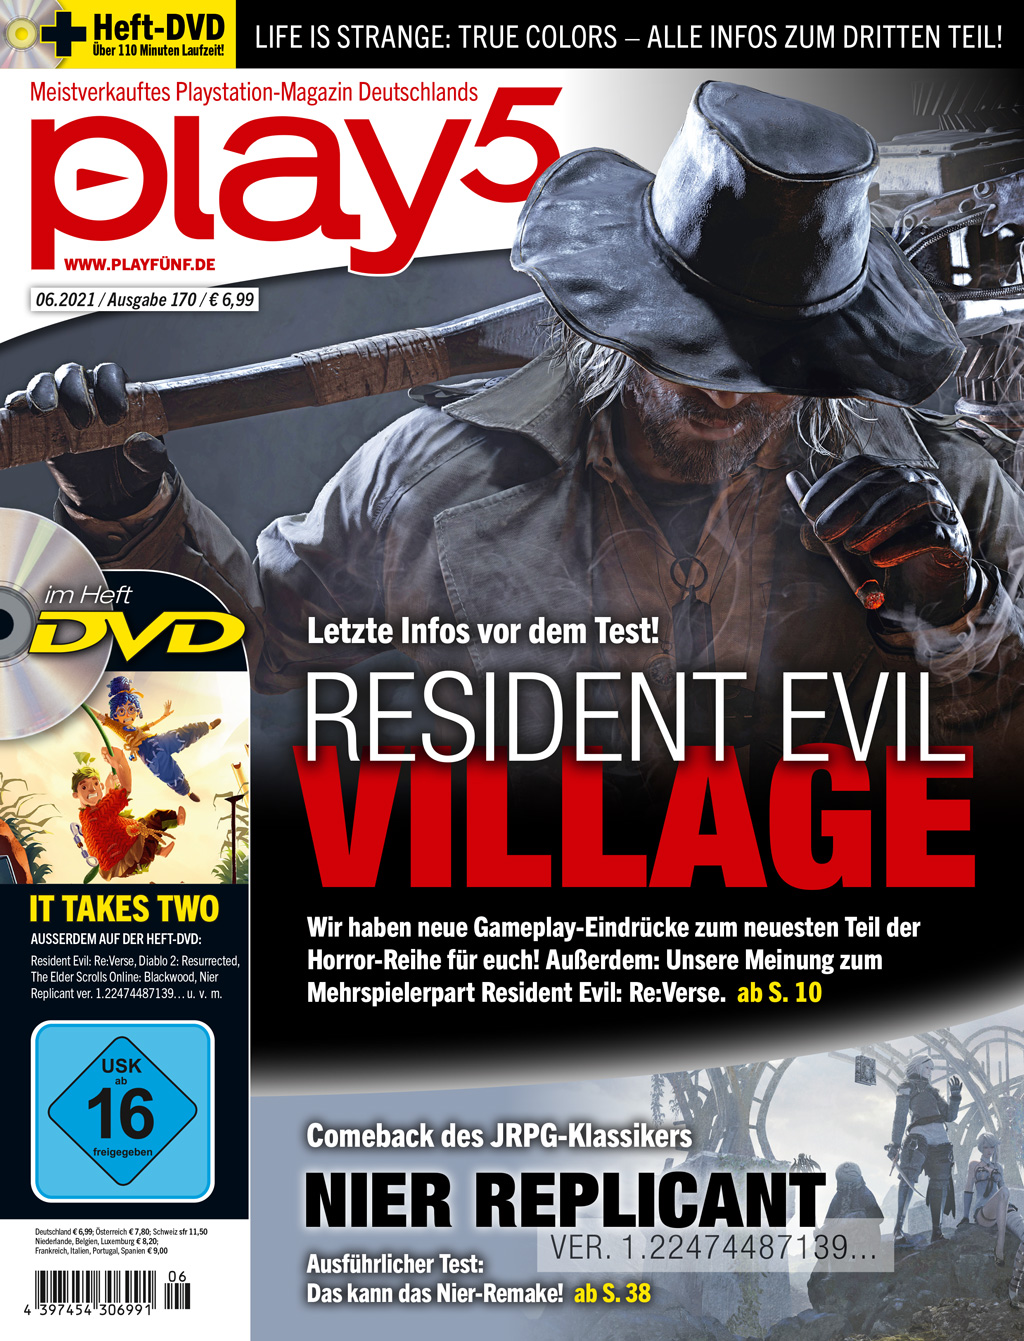 play5 06/21 with Resident Evil: Village, Nier Replicant and more!